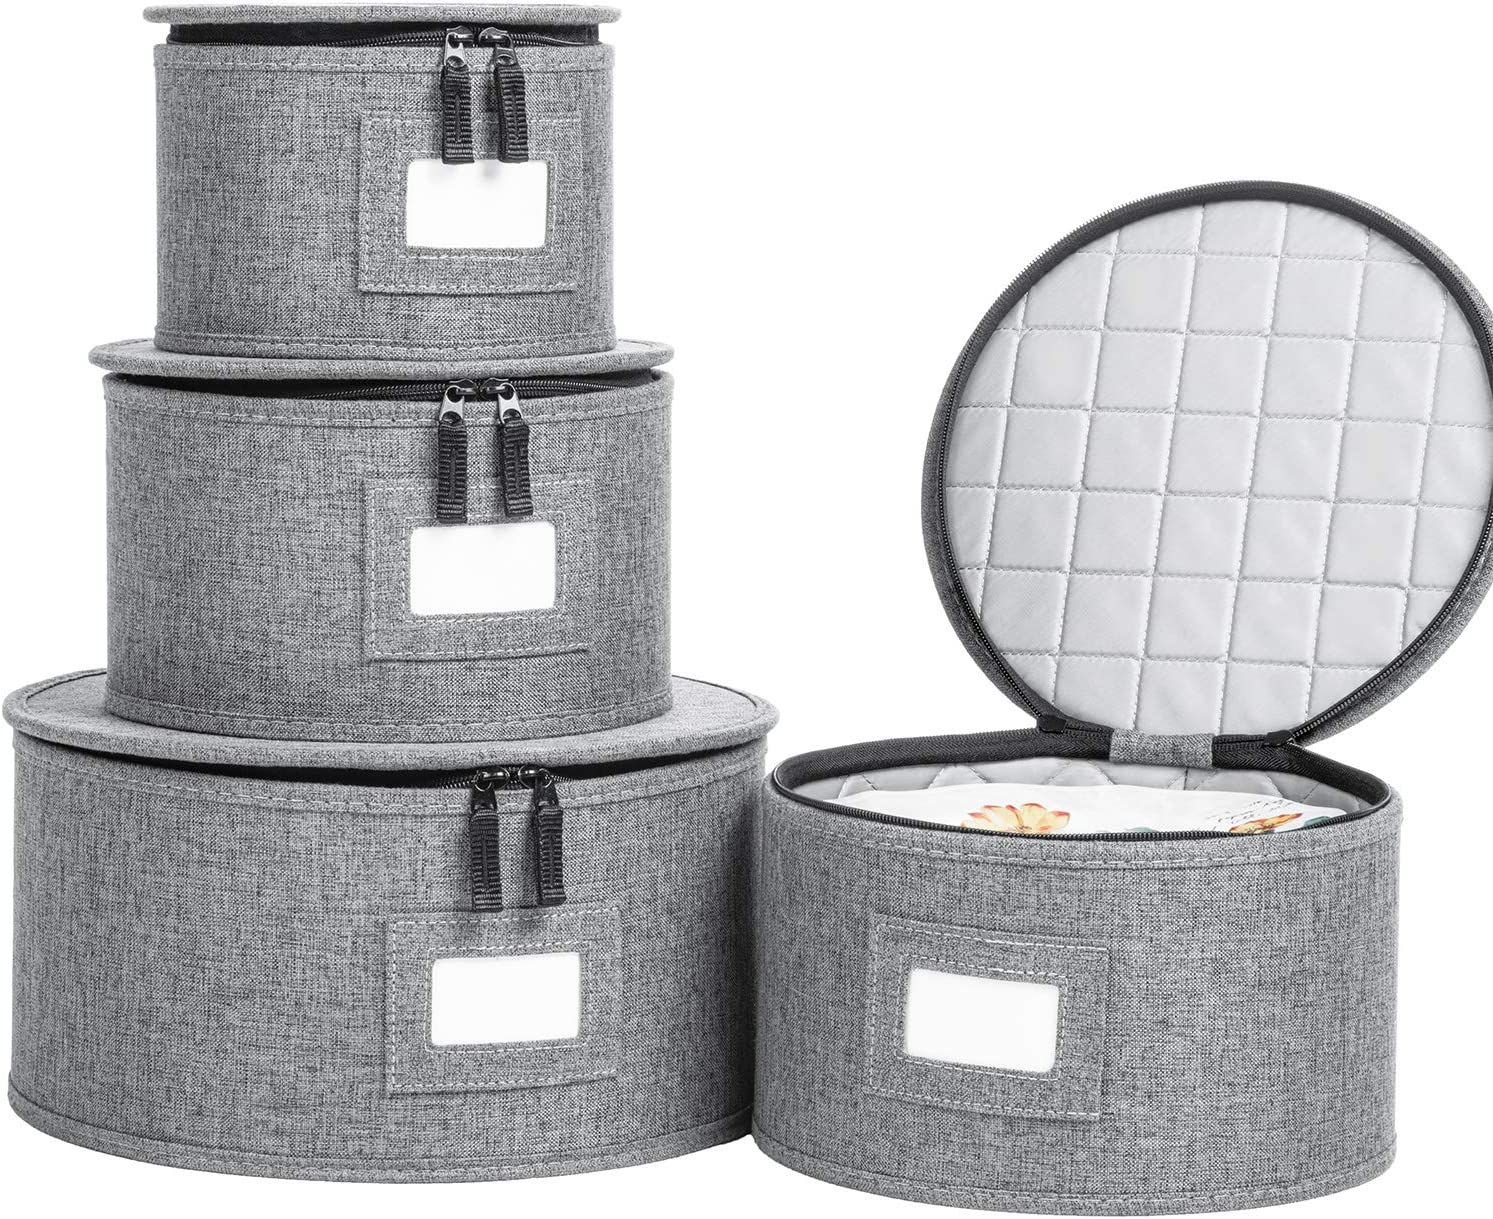 LAMINET 4 Piece Quilted Plate Storage Set Holds Up to 48 Plates with Felt Divider Inserts GREY